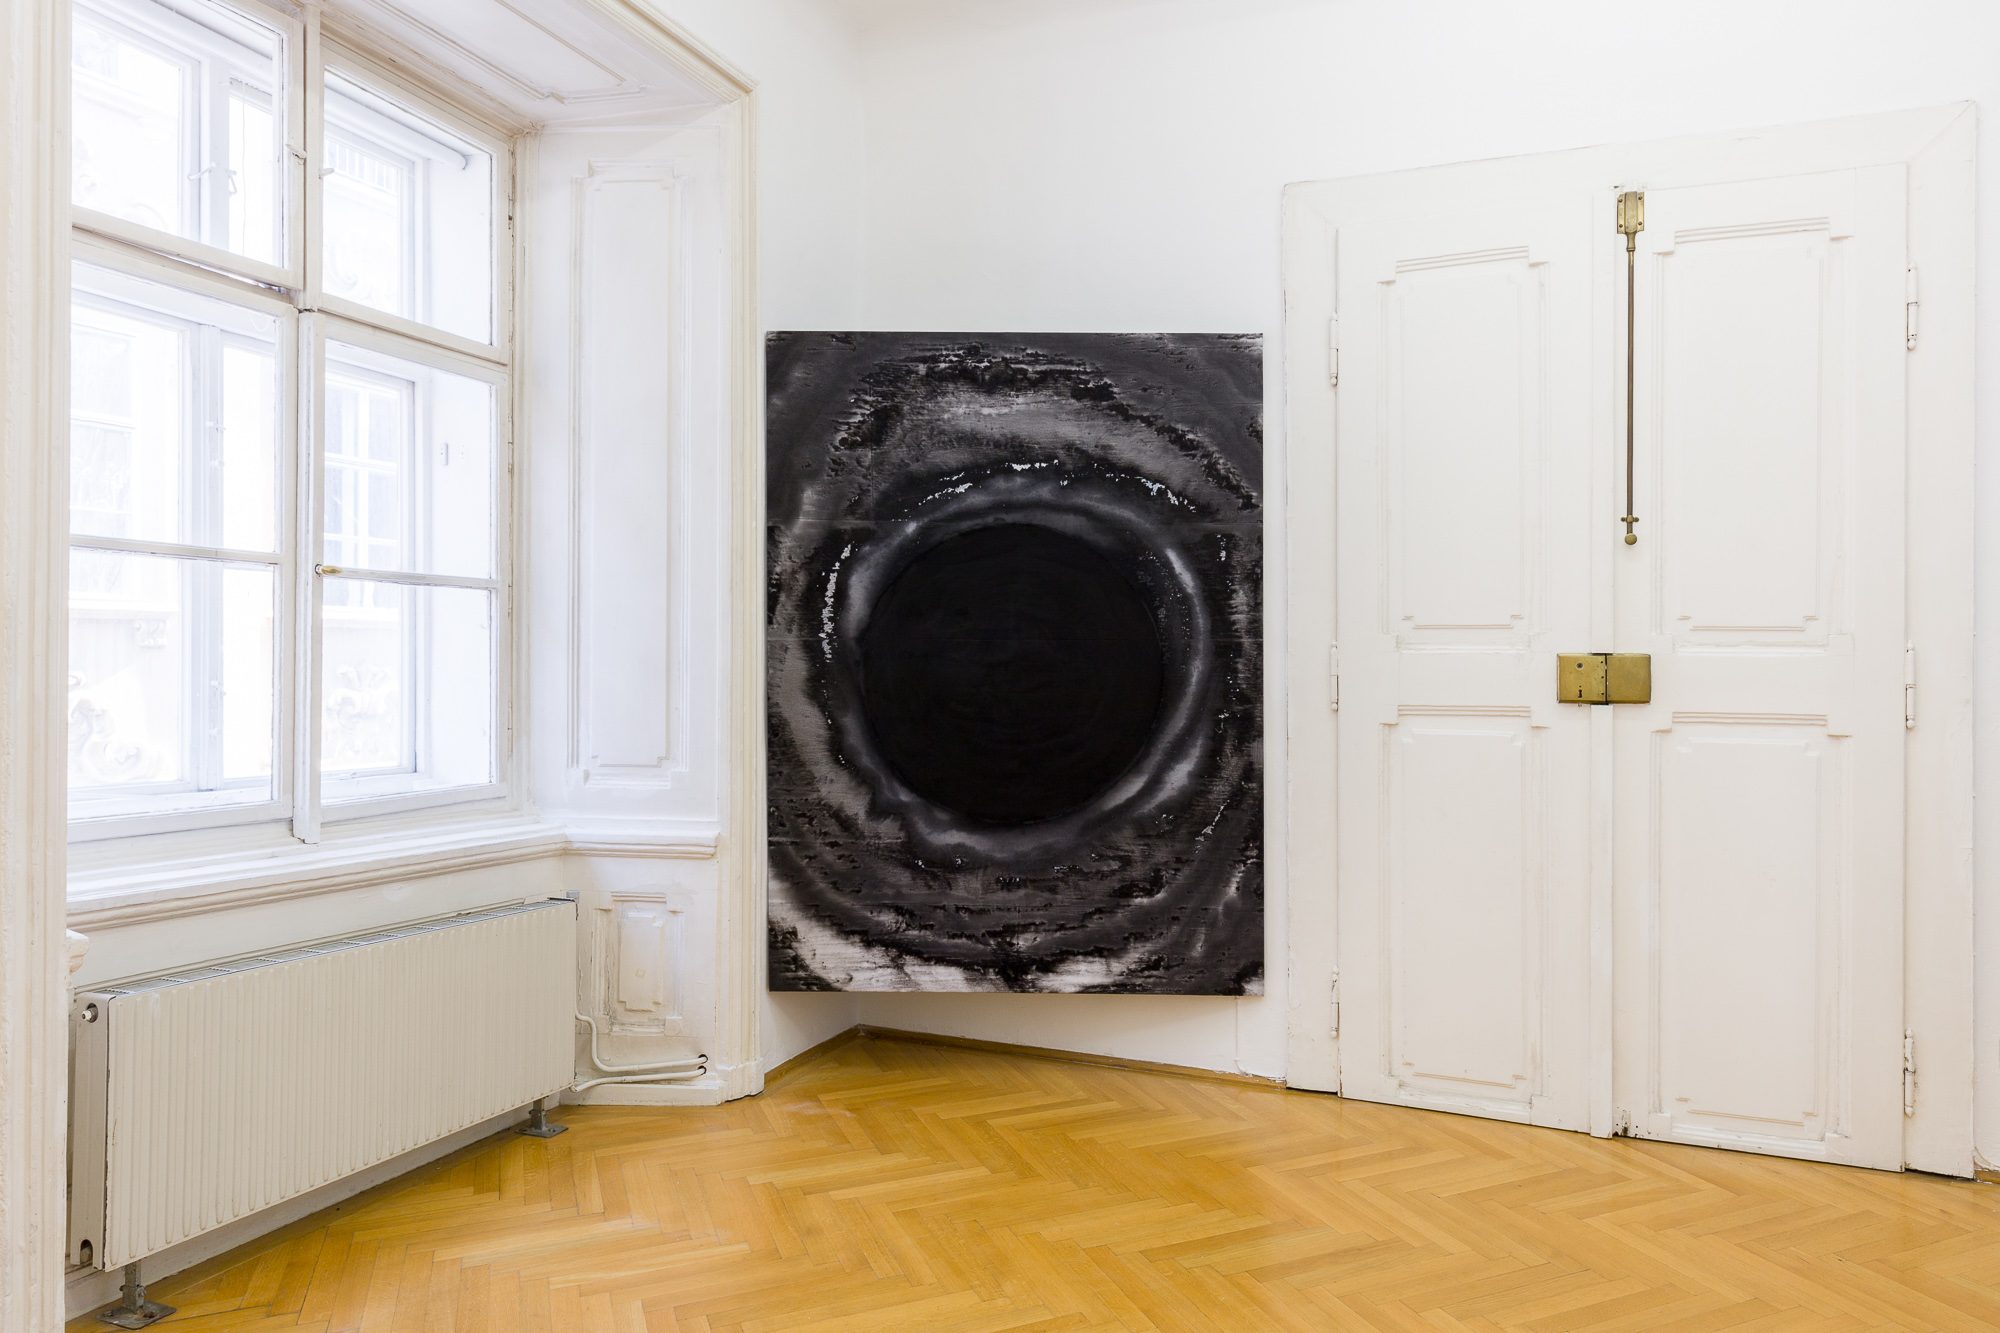 2018_09_15_Andrew Birk at Sort Vienna_by kunst-dokumentation.com_018_web.jpg